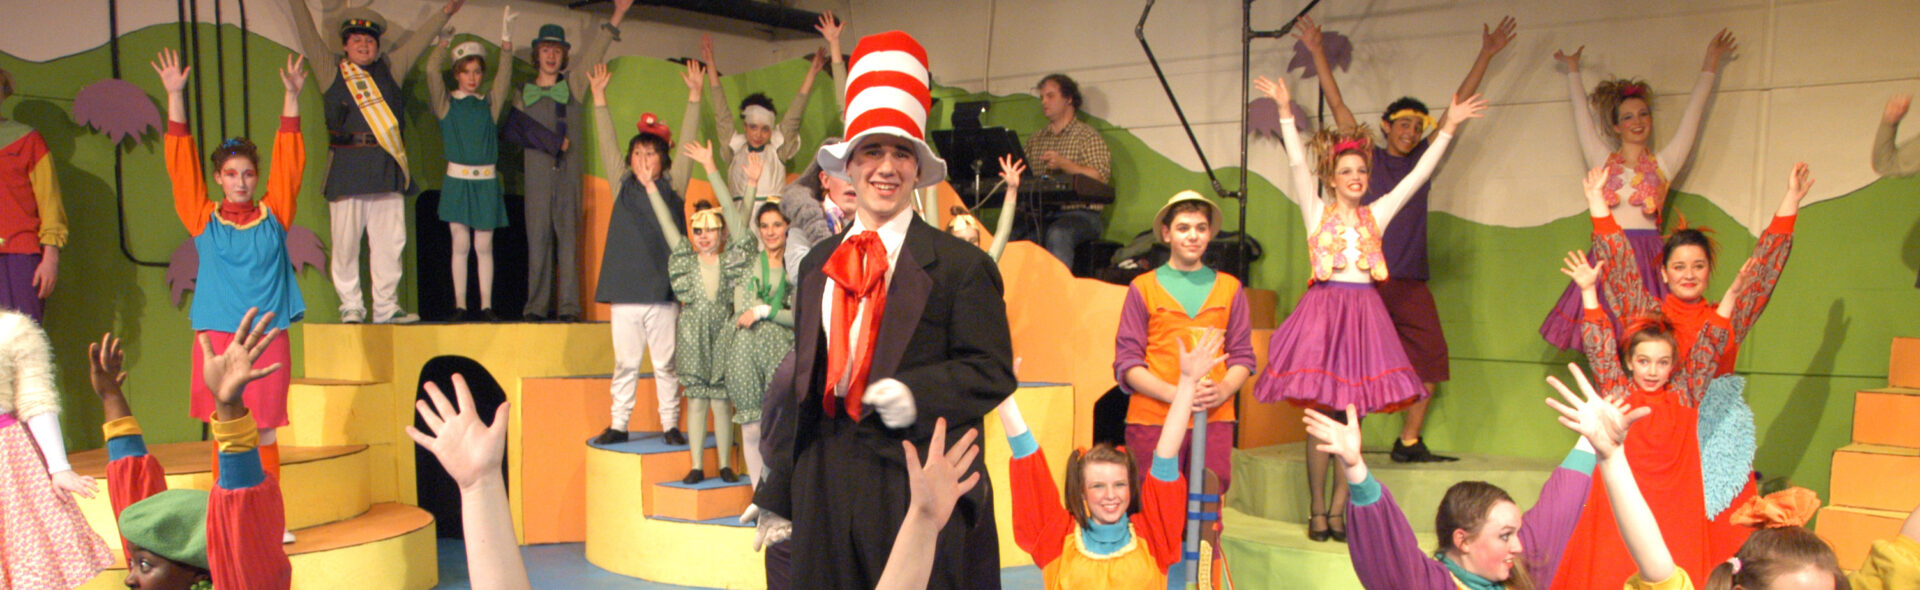 Seussical cropped